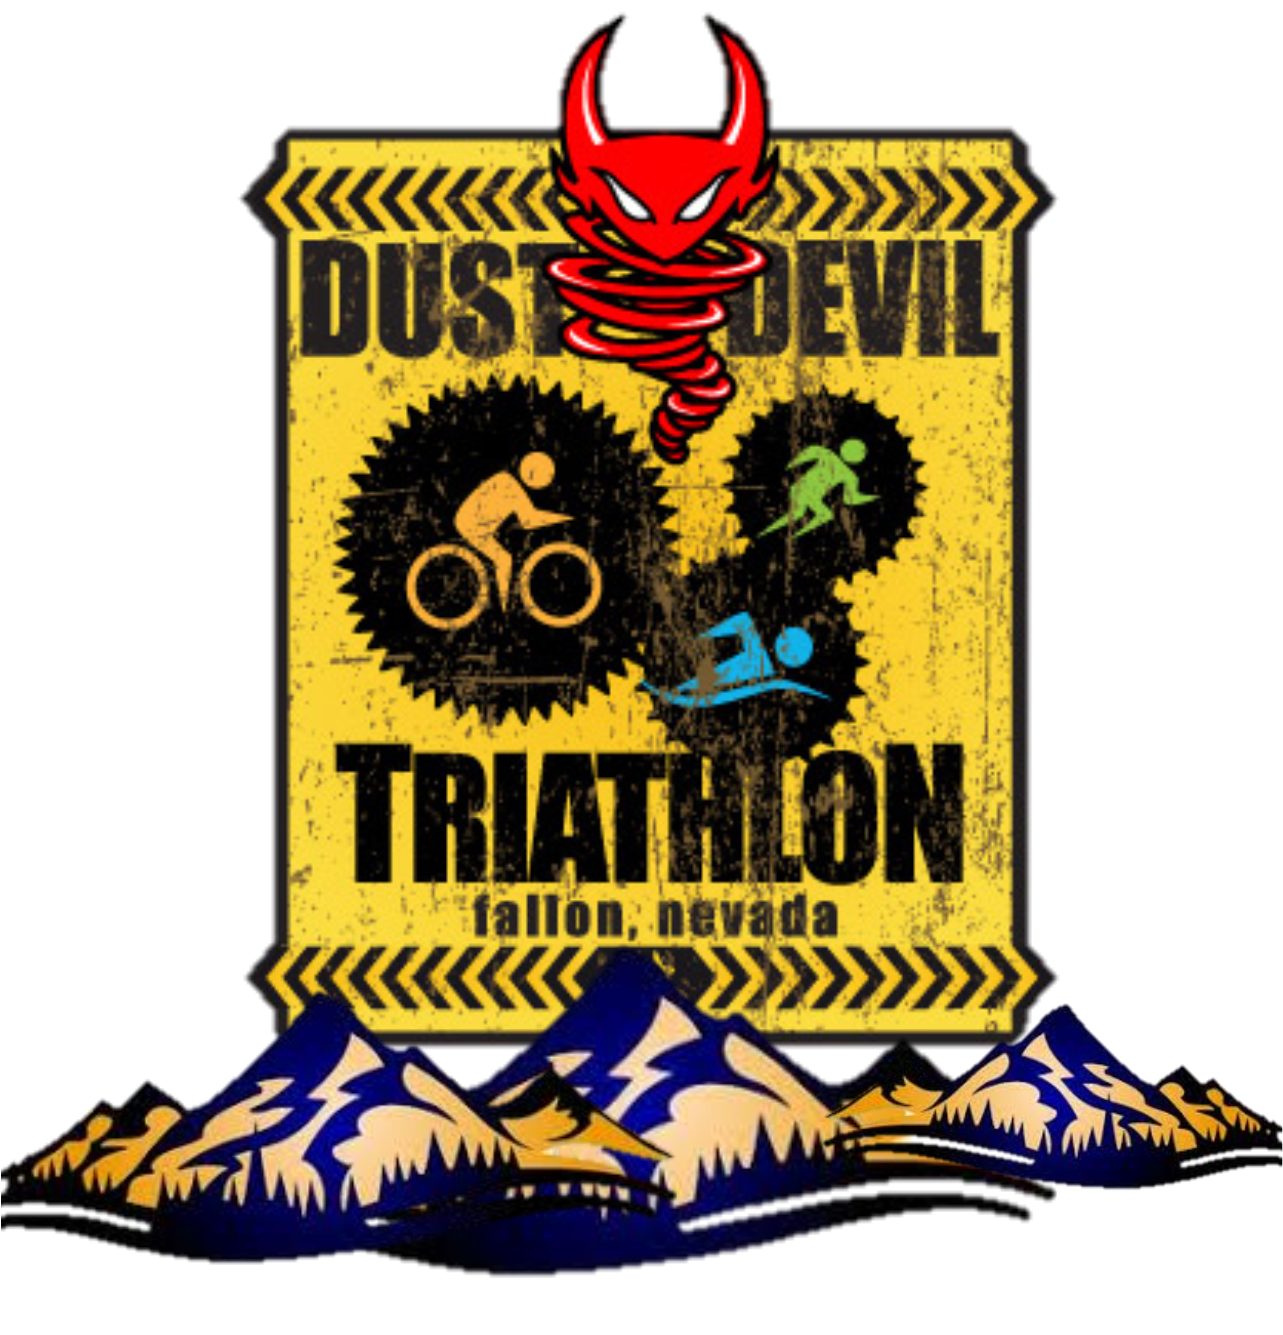 Dust Devil Sprint Triathlon Logo - Banner in front of mountains with dust devil image